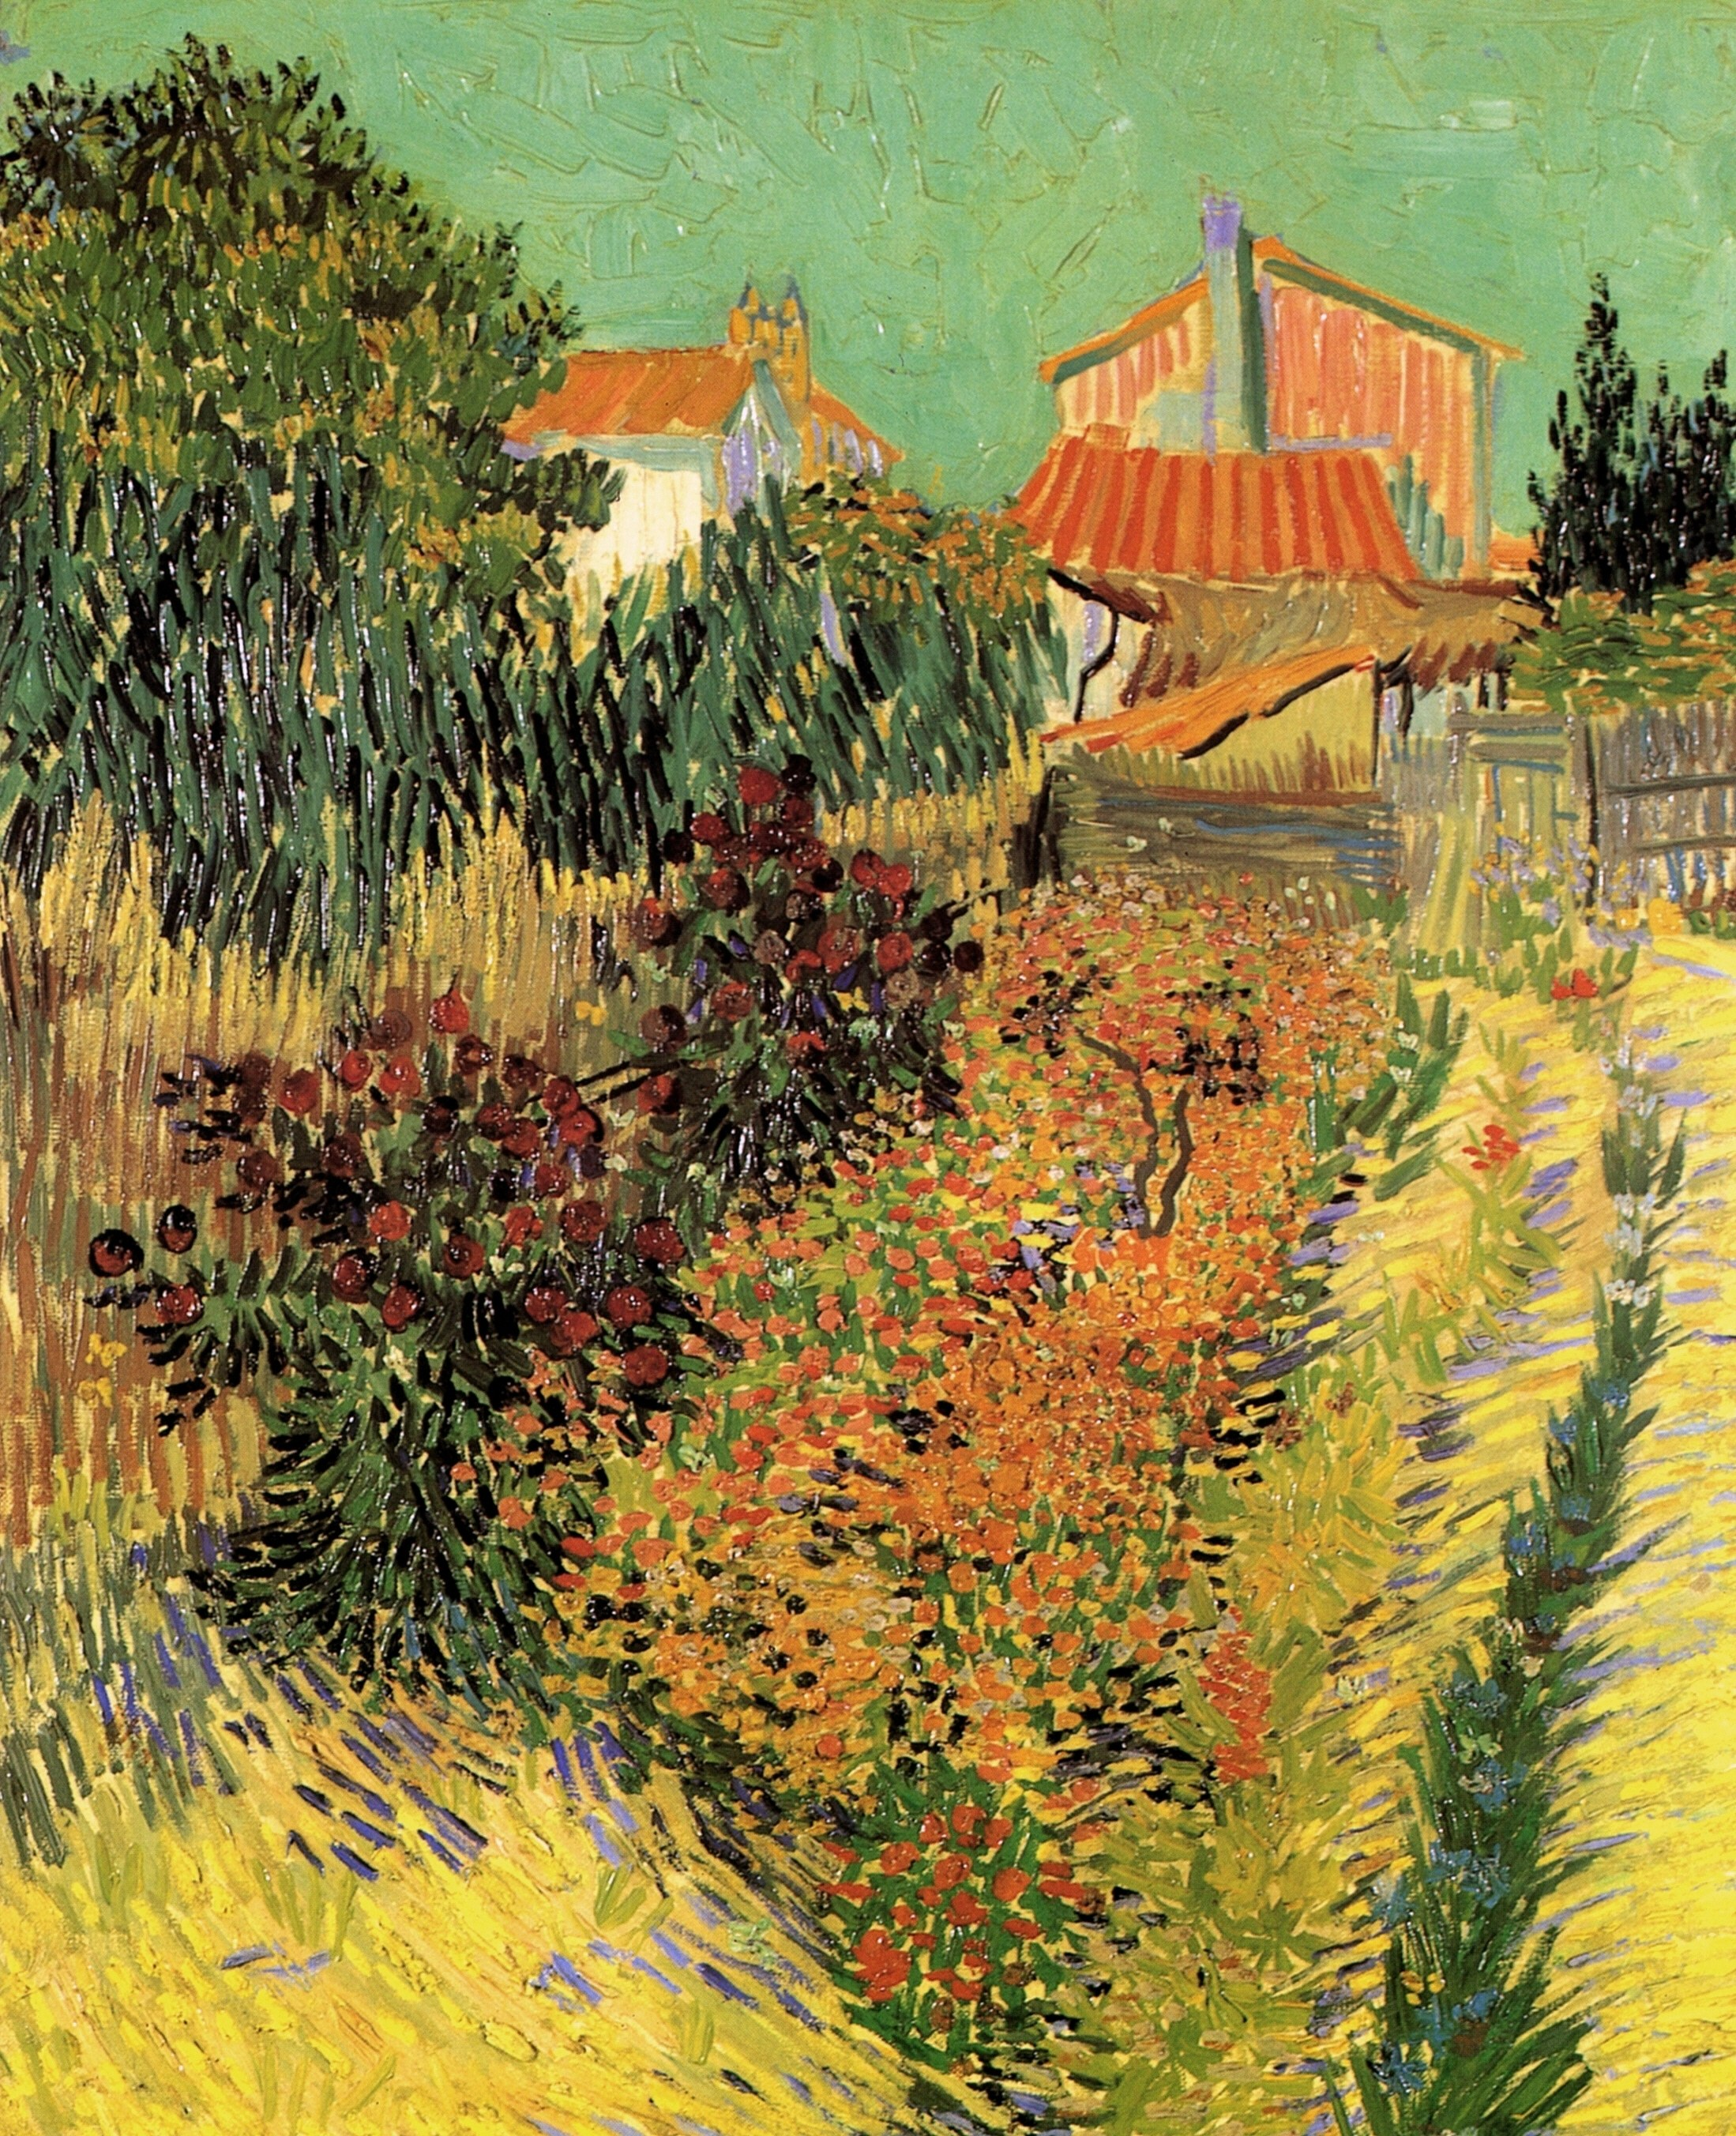 Vincent van Gogh - Garden Behind a House 1888 - art-vanGogh.com